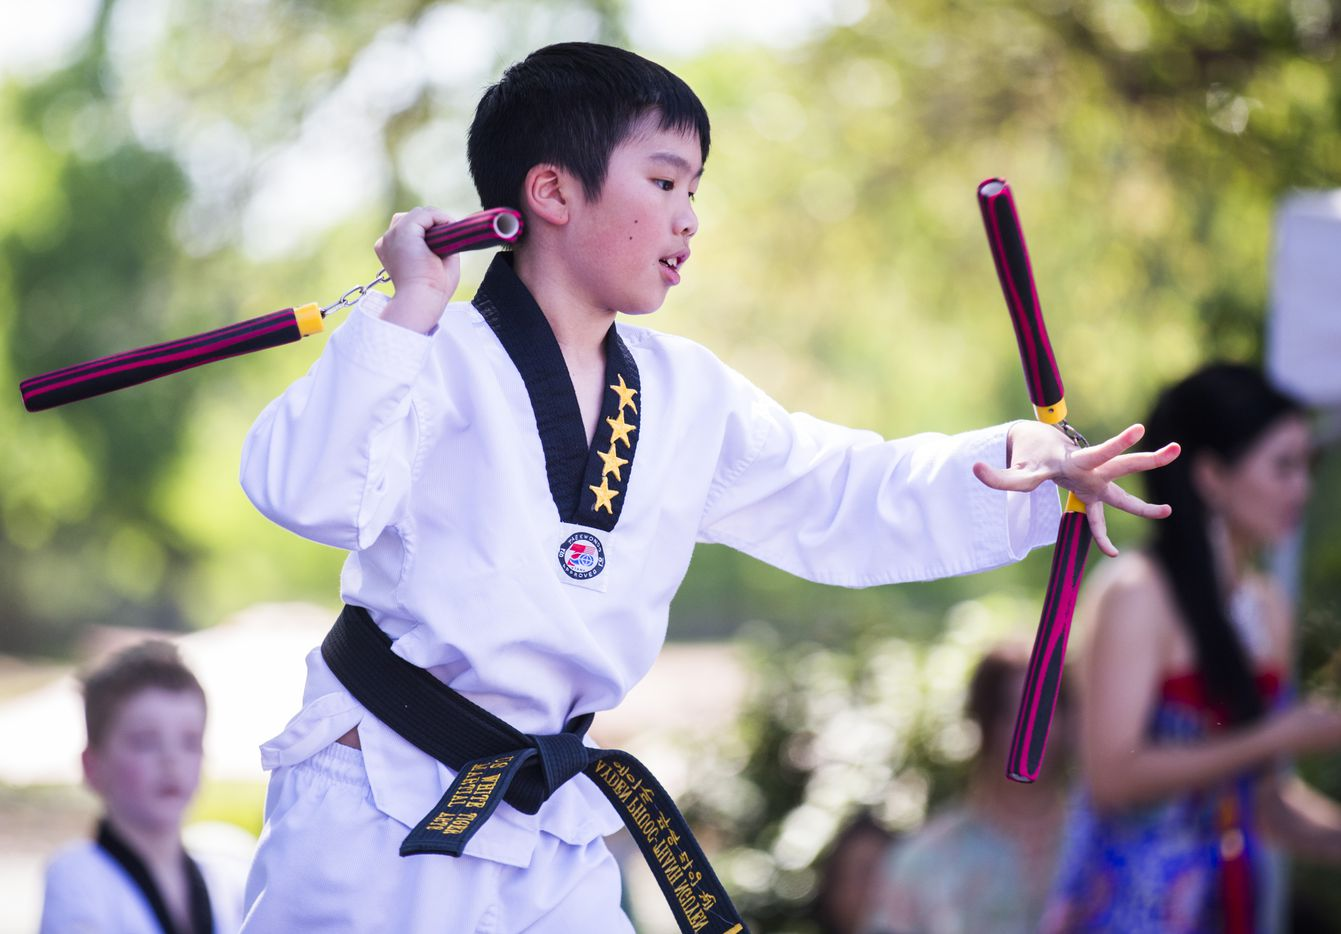 Ayden Nguyen, 11, of US White Tiger Martial Arts of Plano, performs during the 27th Home Depot Asian Festival on Saturday, May 13, 2017 at Cotton Bowl Plaza in Dallas Fair Park.